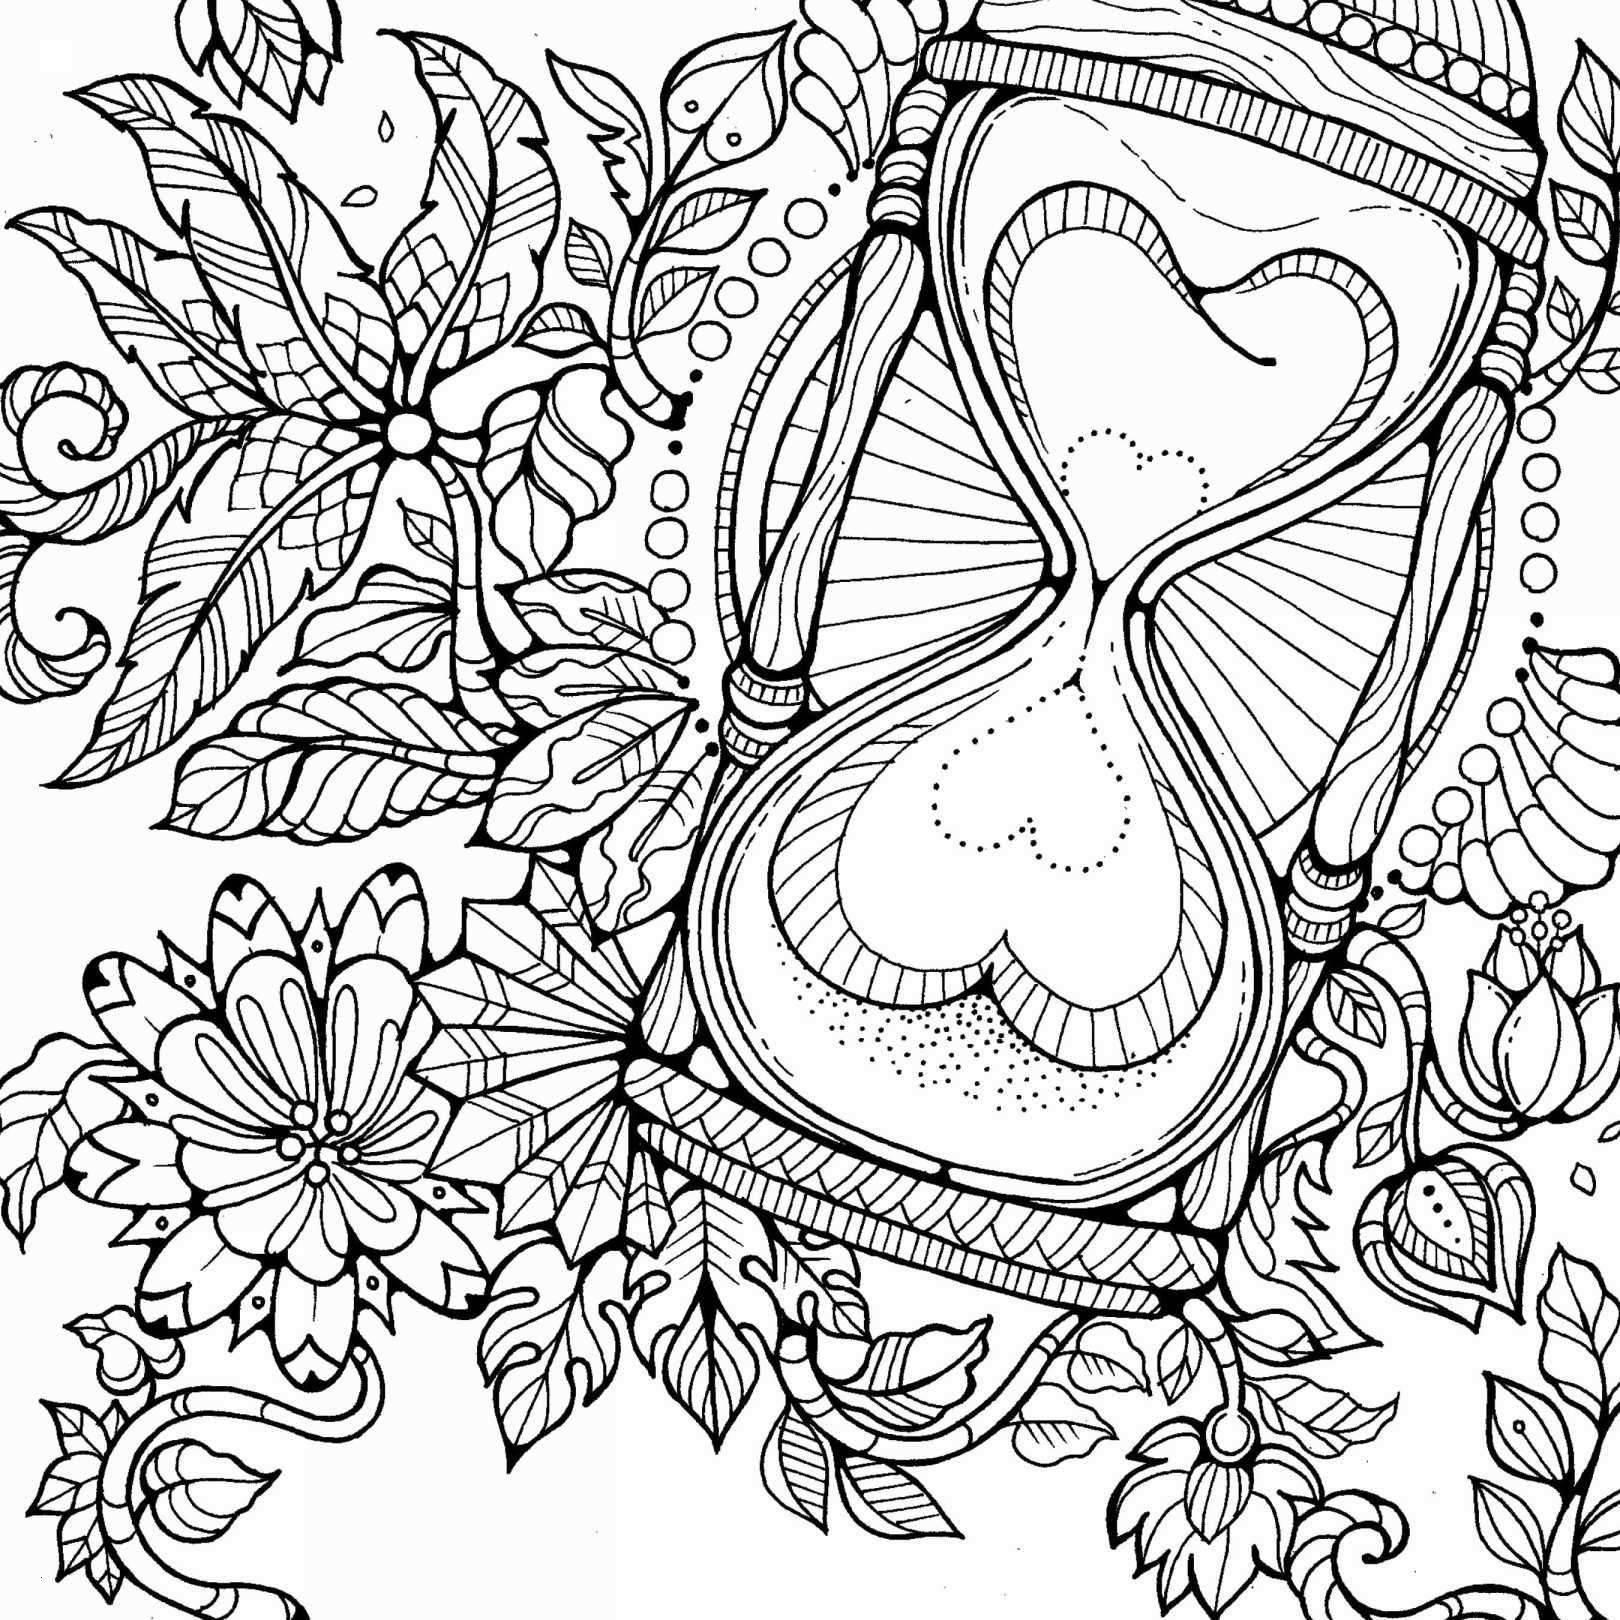 Ugly Christmas Sweater Coloring Pages With Tree Colors Fresh 32 New Trees